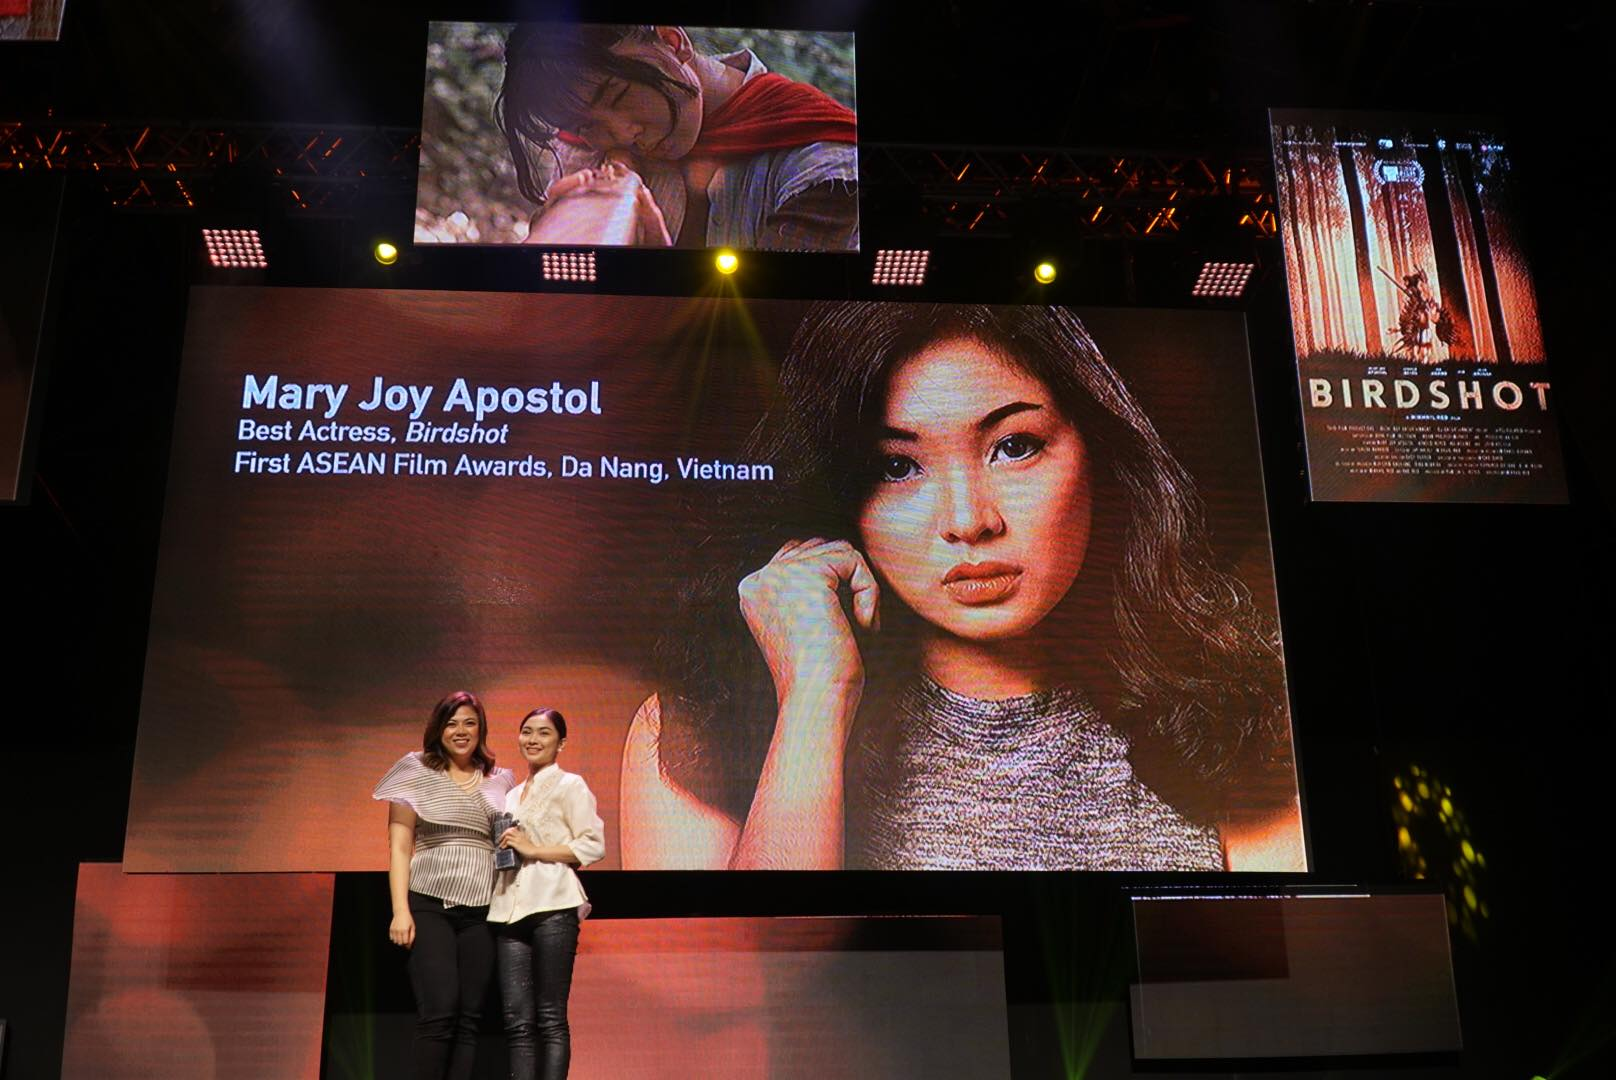 RECOGNITION. Mary Joy Apostol receives her award.